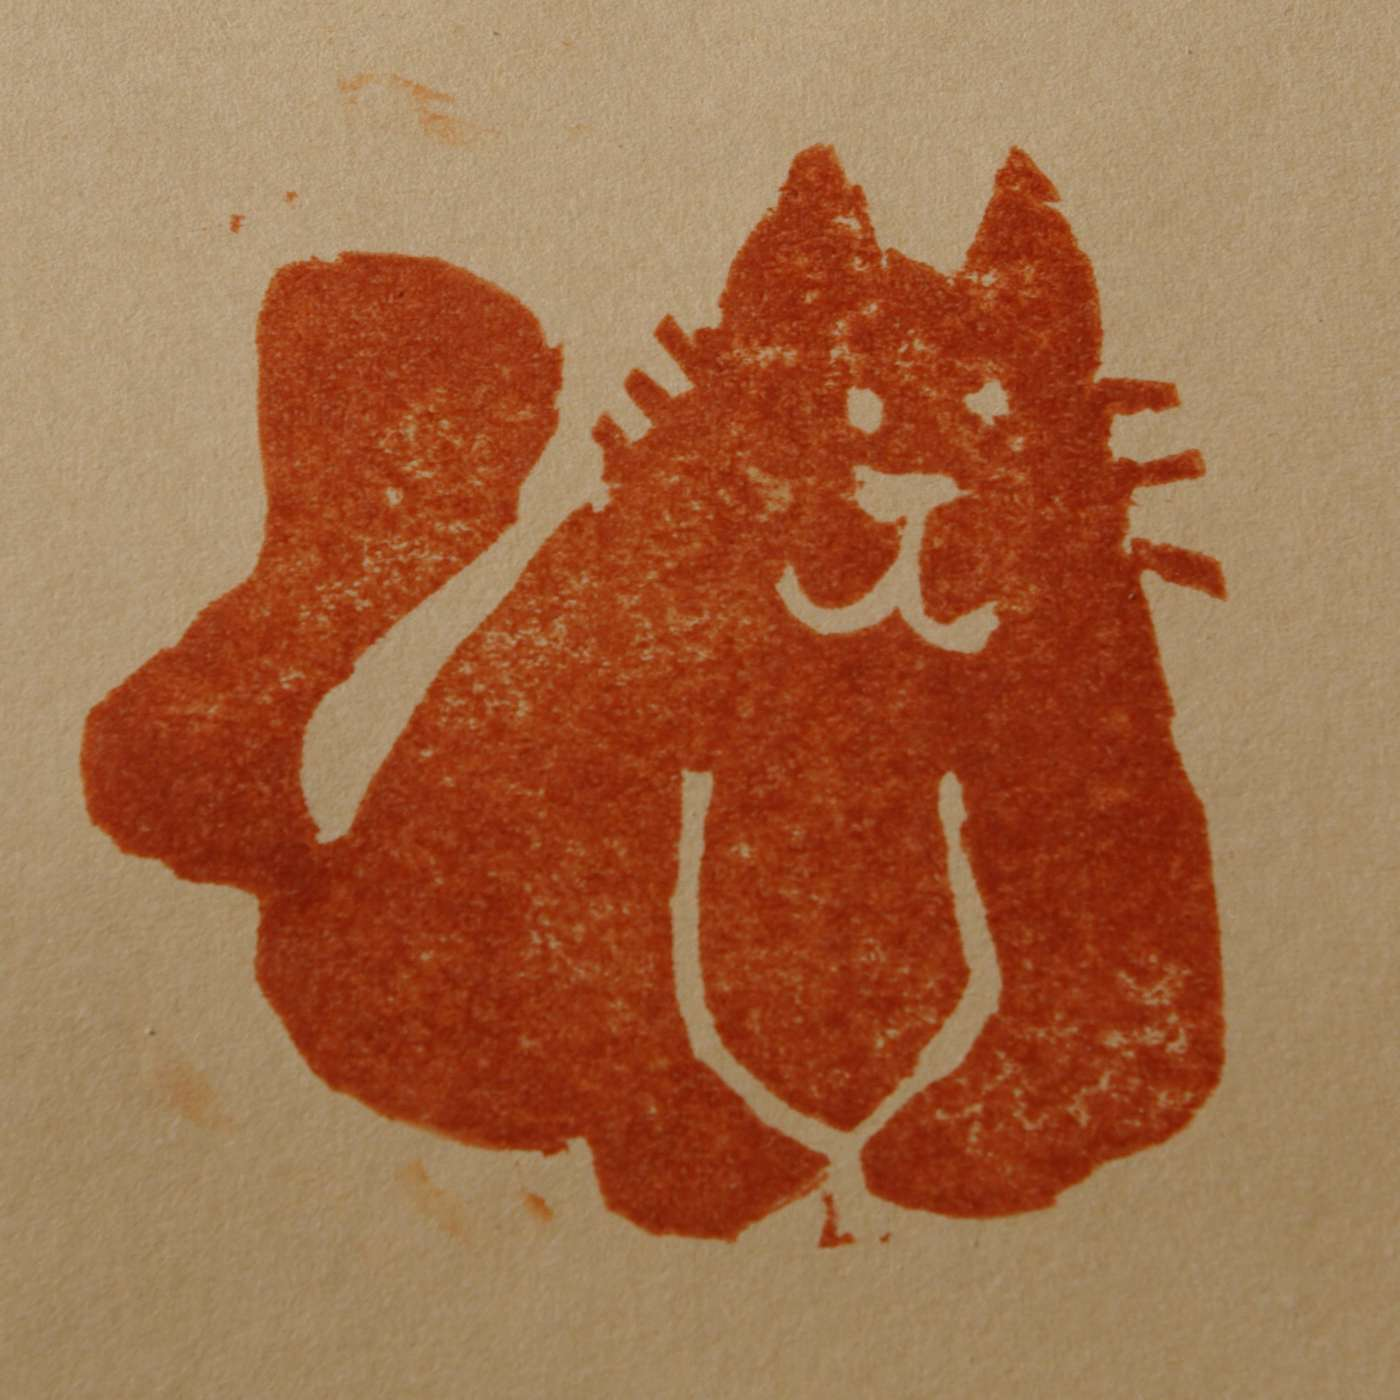 A stamp print from a soft block